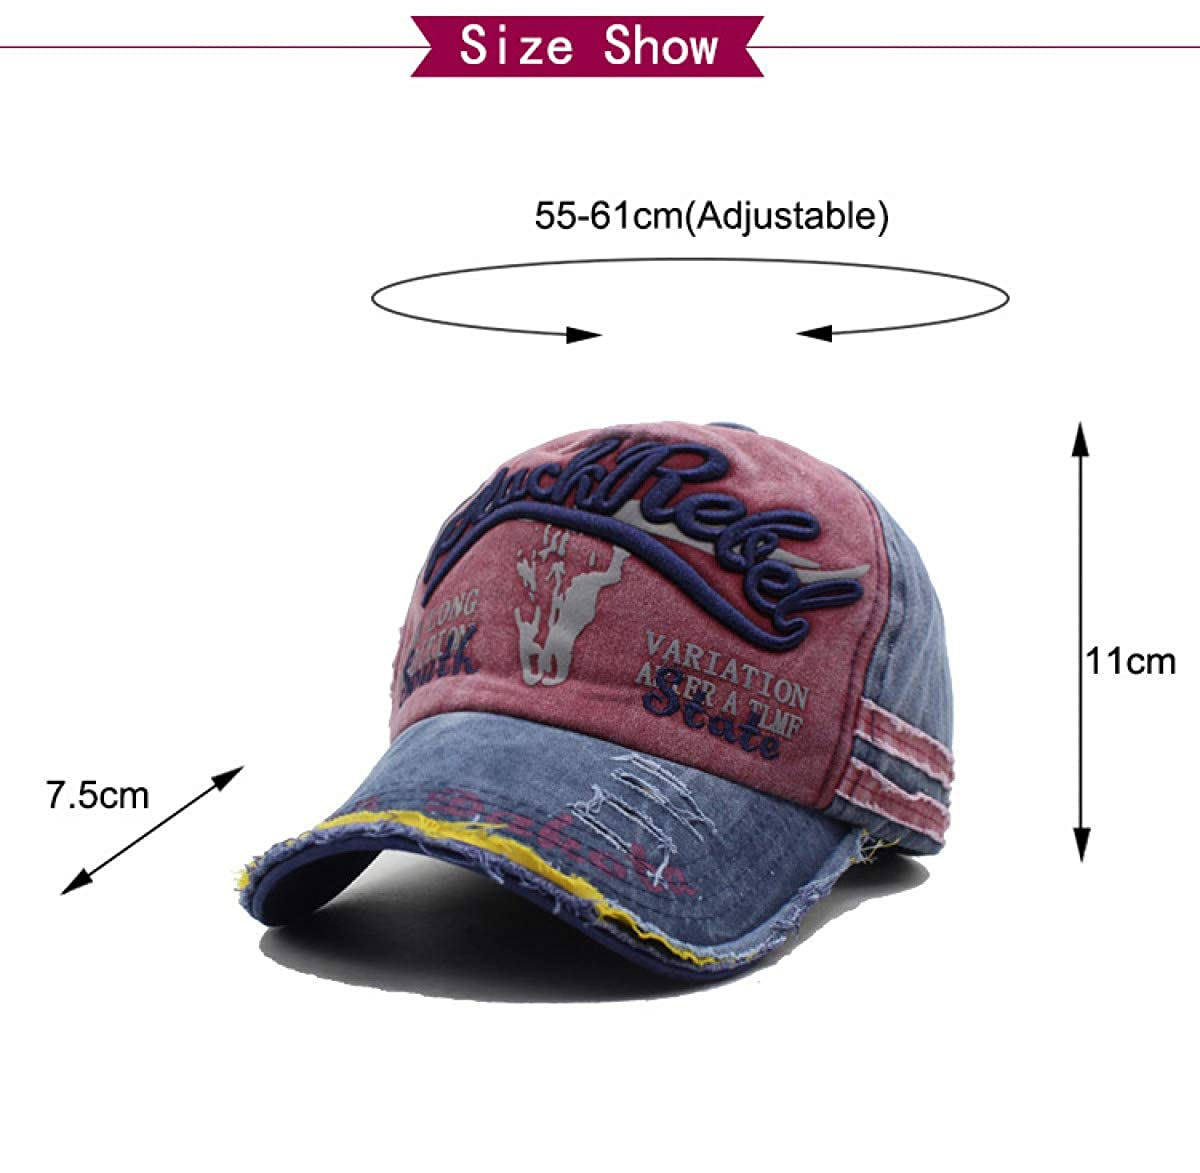 FLAMINGO_STORE Men Baseball Caps Dad Snapback Caps Bone Hats for Men Baseball Cap Coffee Khaki at Amazon Mens Clothing store: